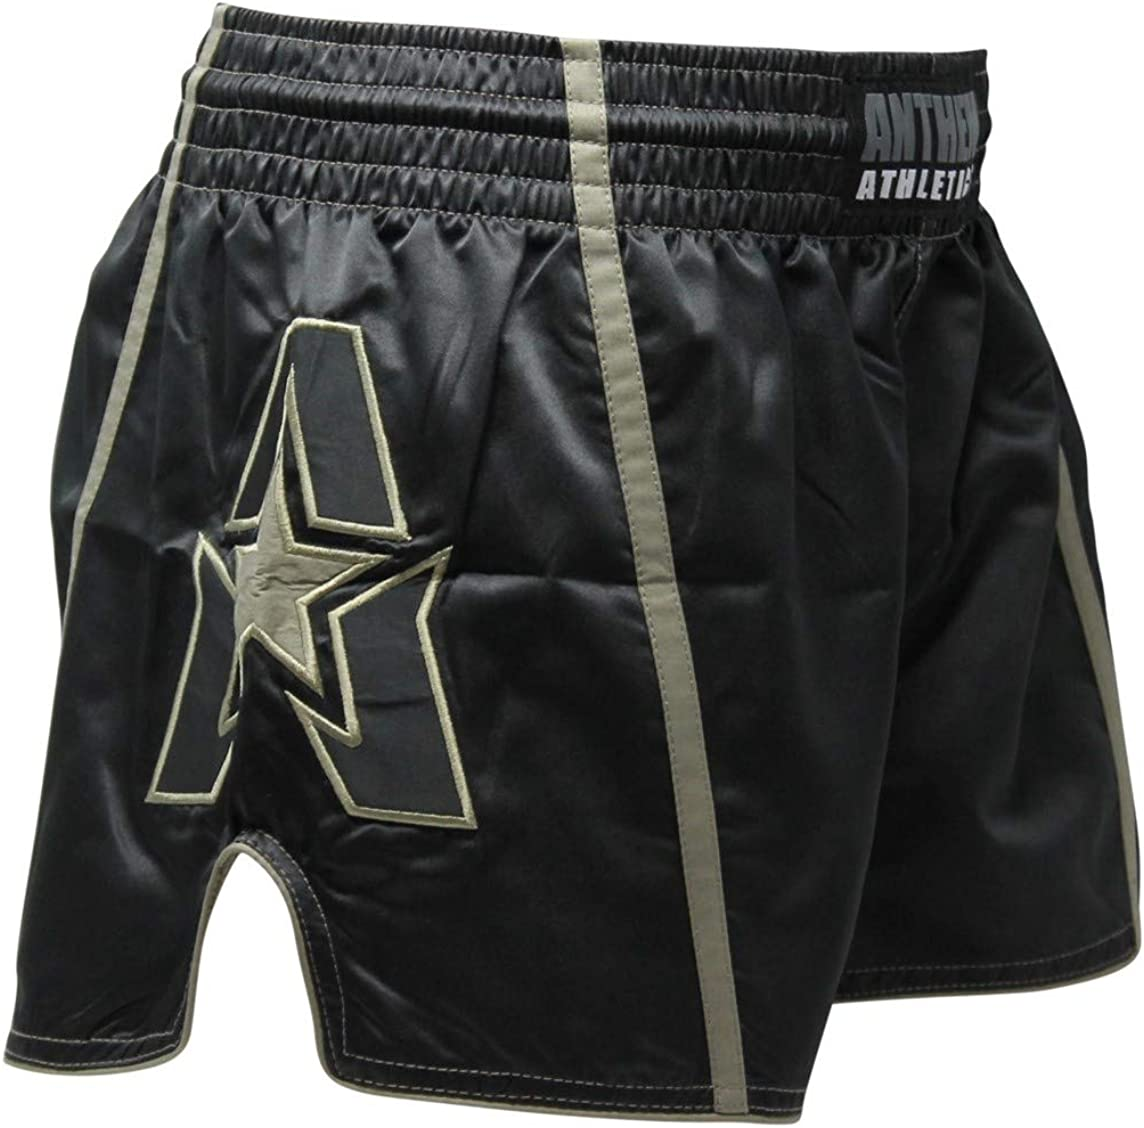 Kết quả hình ảnh cho Anthem Athletics Infinity Muay Thai Shorts - Kickboxing, Thai Boxing, Striking